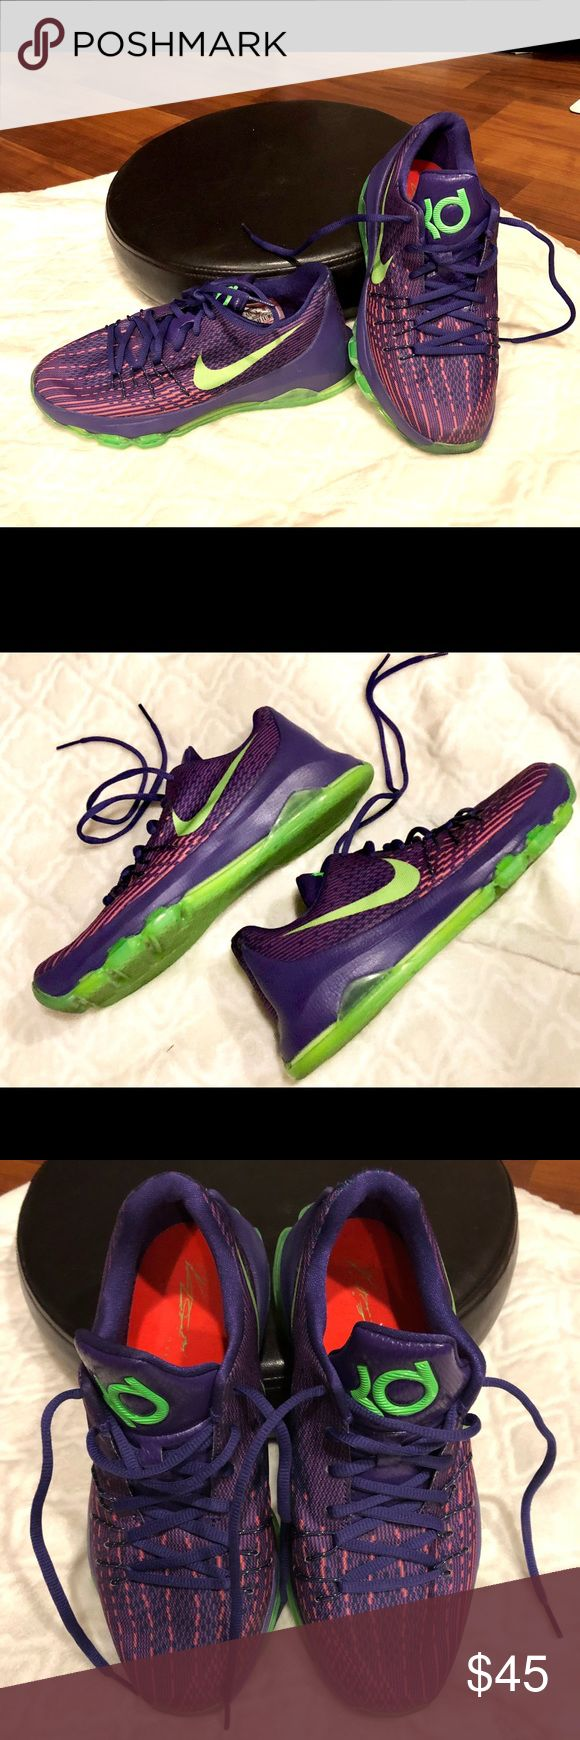 KD8. Kevin Durant Nike /Size 6.5 youth=9 women's ⛹🏽‍♂️KD8, Kevin Durant Nike's.⛹🏽‍♂️In EUC, only worn a few times, still look in newer condition. Size is a Youth 6.5 or a Women's 9. Color in Bright Purple & Neon Green Accent. Shoes only/no box. Priced to sell, but reasonable offers ok. Nike Shoes Athletic Shoes